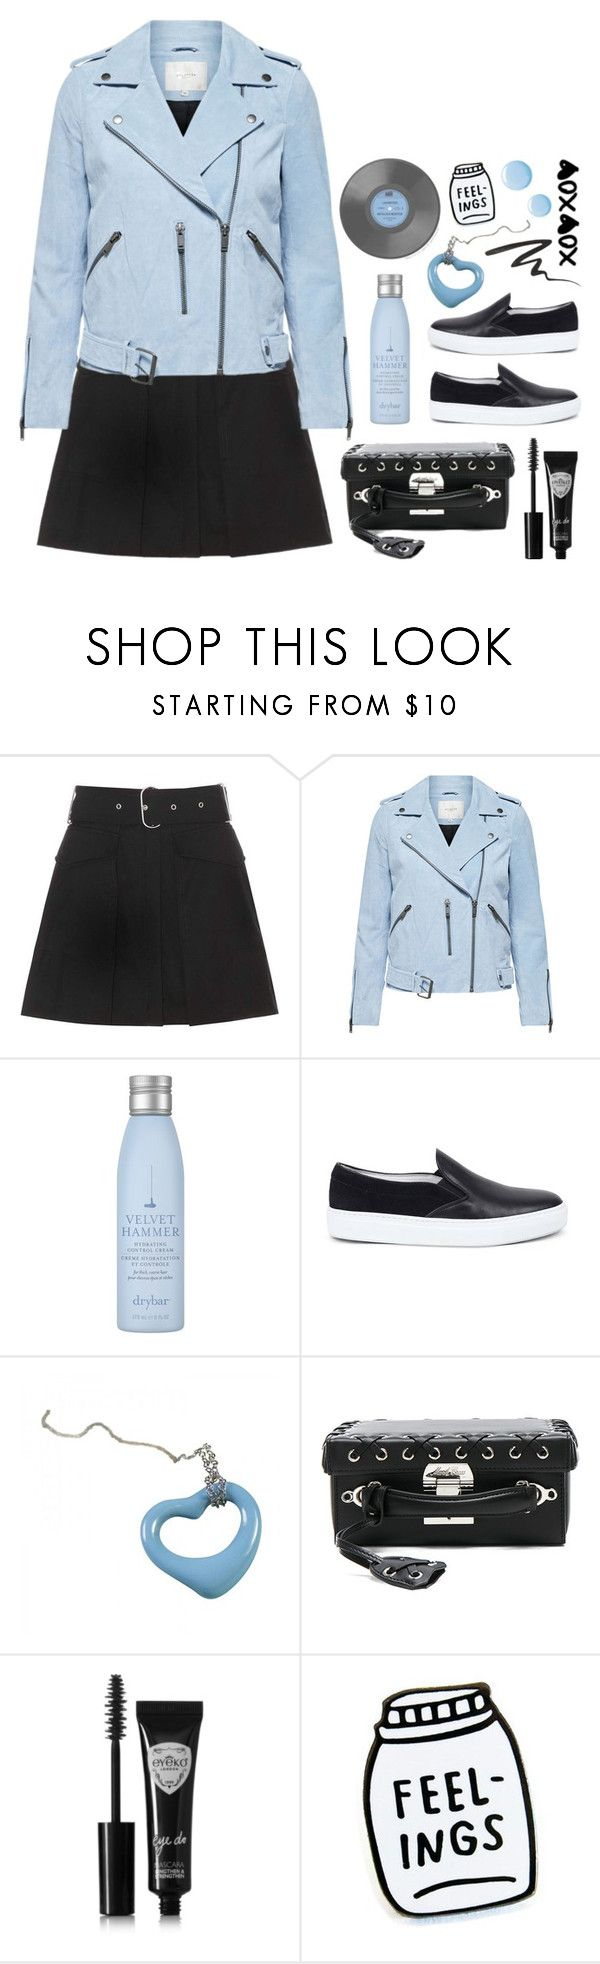 """outfit of the day"" by deepwinter ❤ liked on Polyvore featuring Acne Studios, Drybar, Amb Ambassadors of minimalism, Tiffany & Co., Mark Cross, Eyeko, Anna Sui and Topshop"